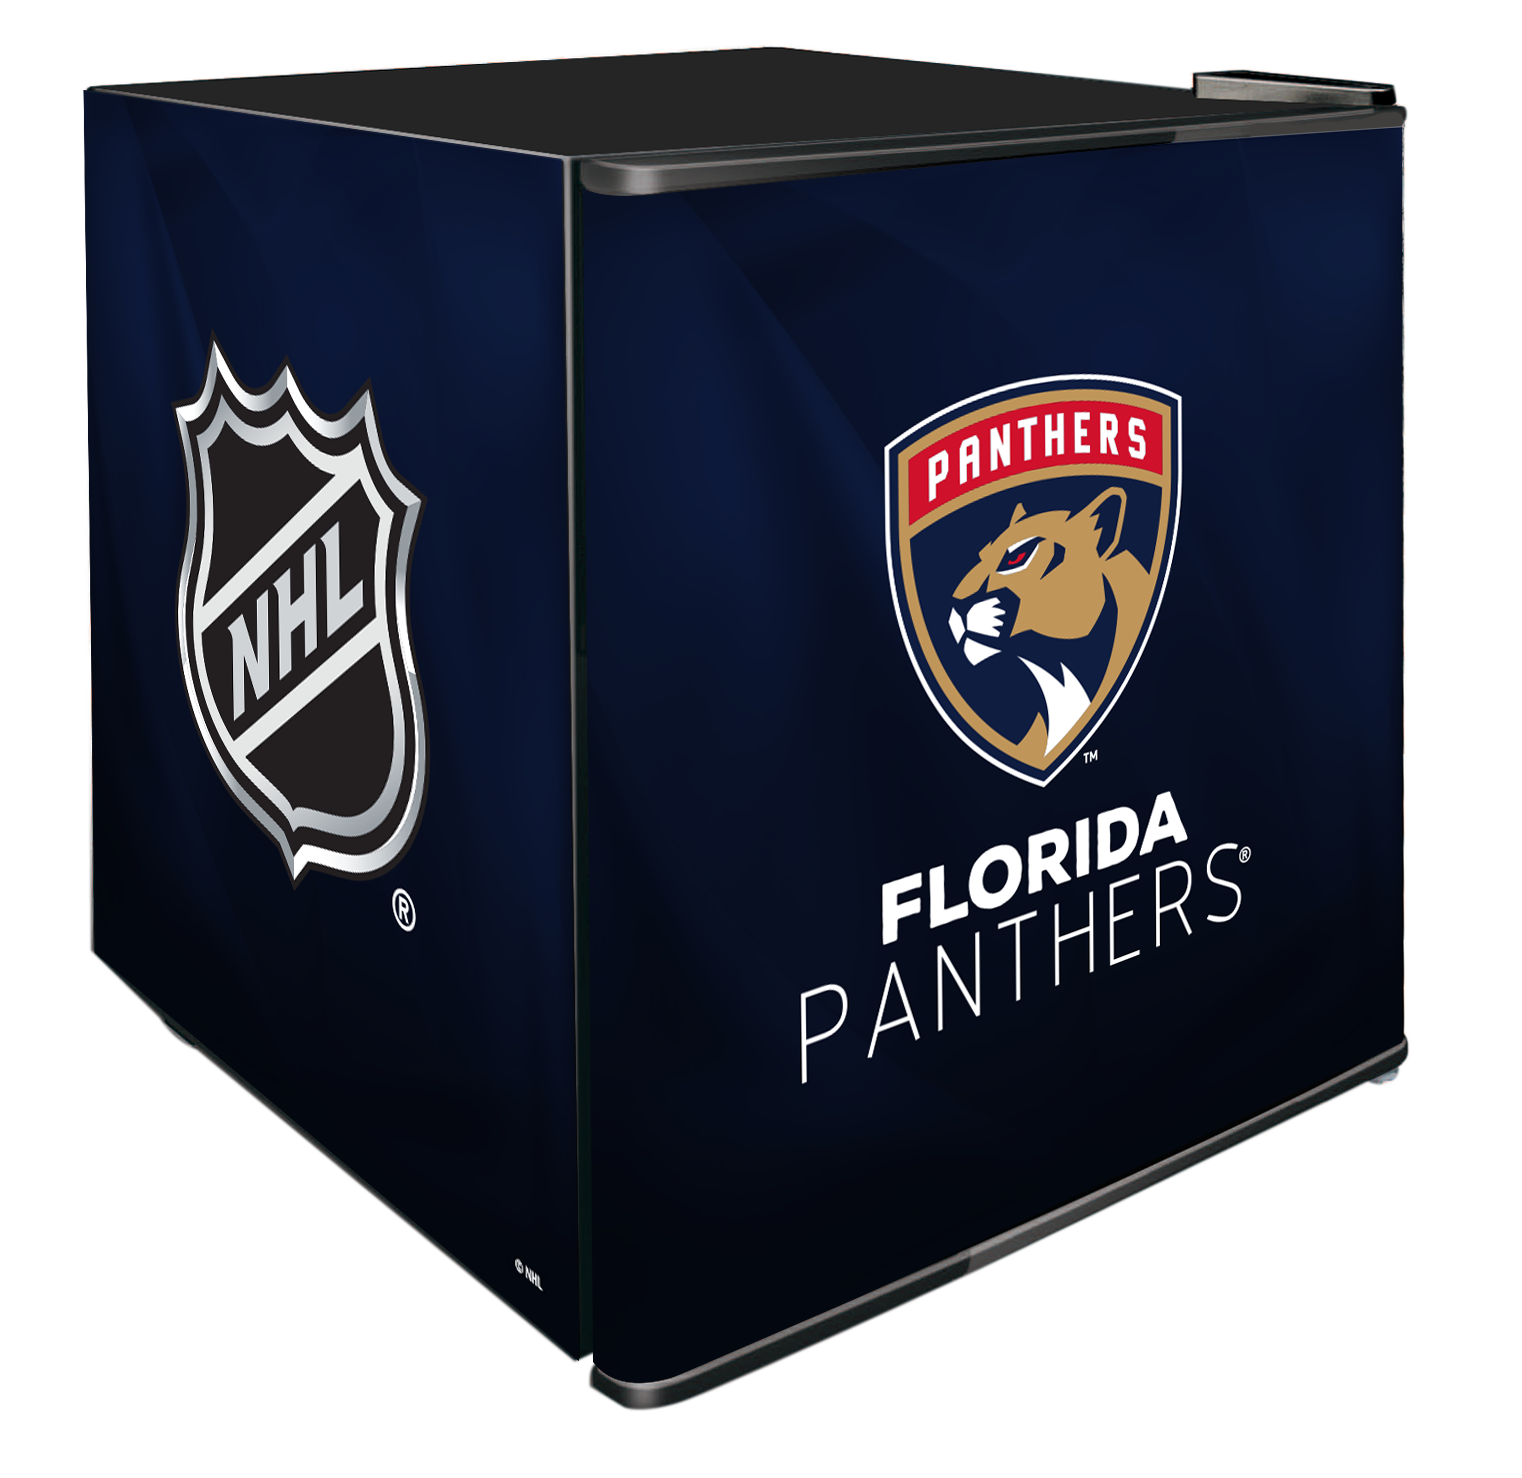 NHL Solid Door Refrigerated Beverage Center 1.8 cu ft - Florida Panthers